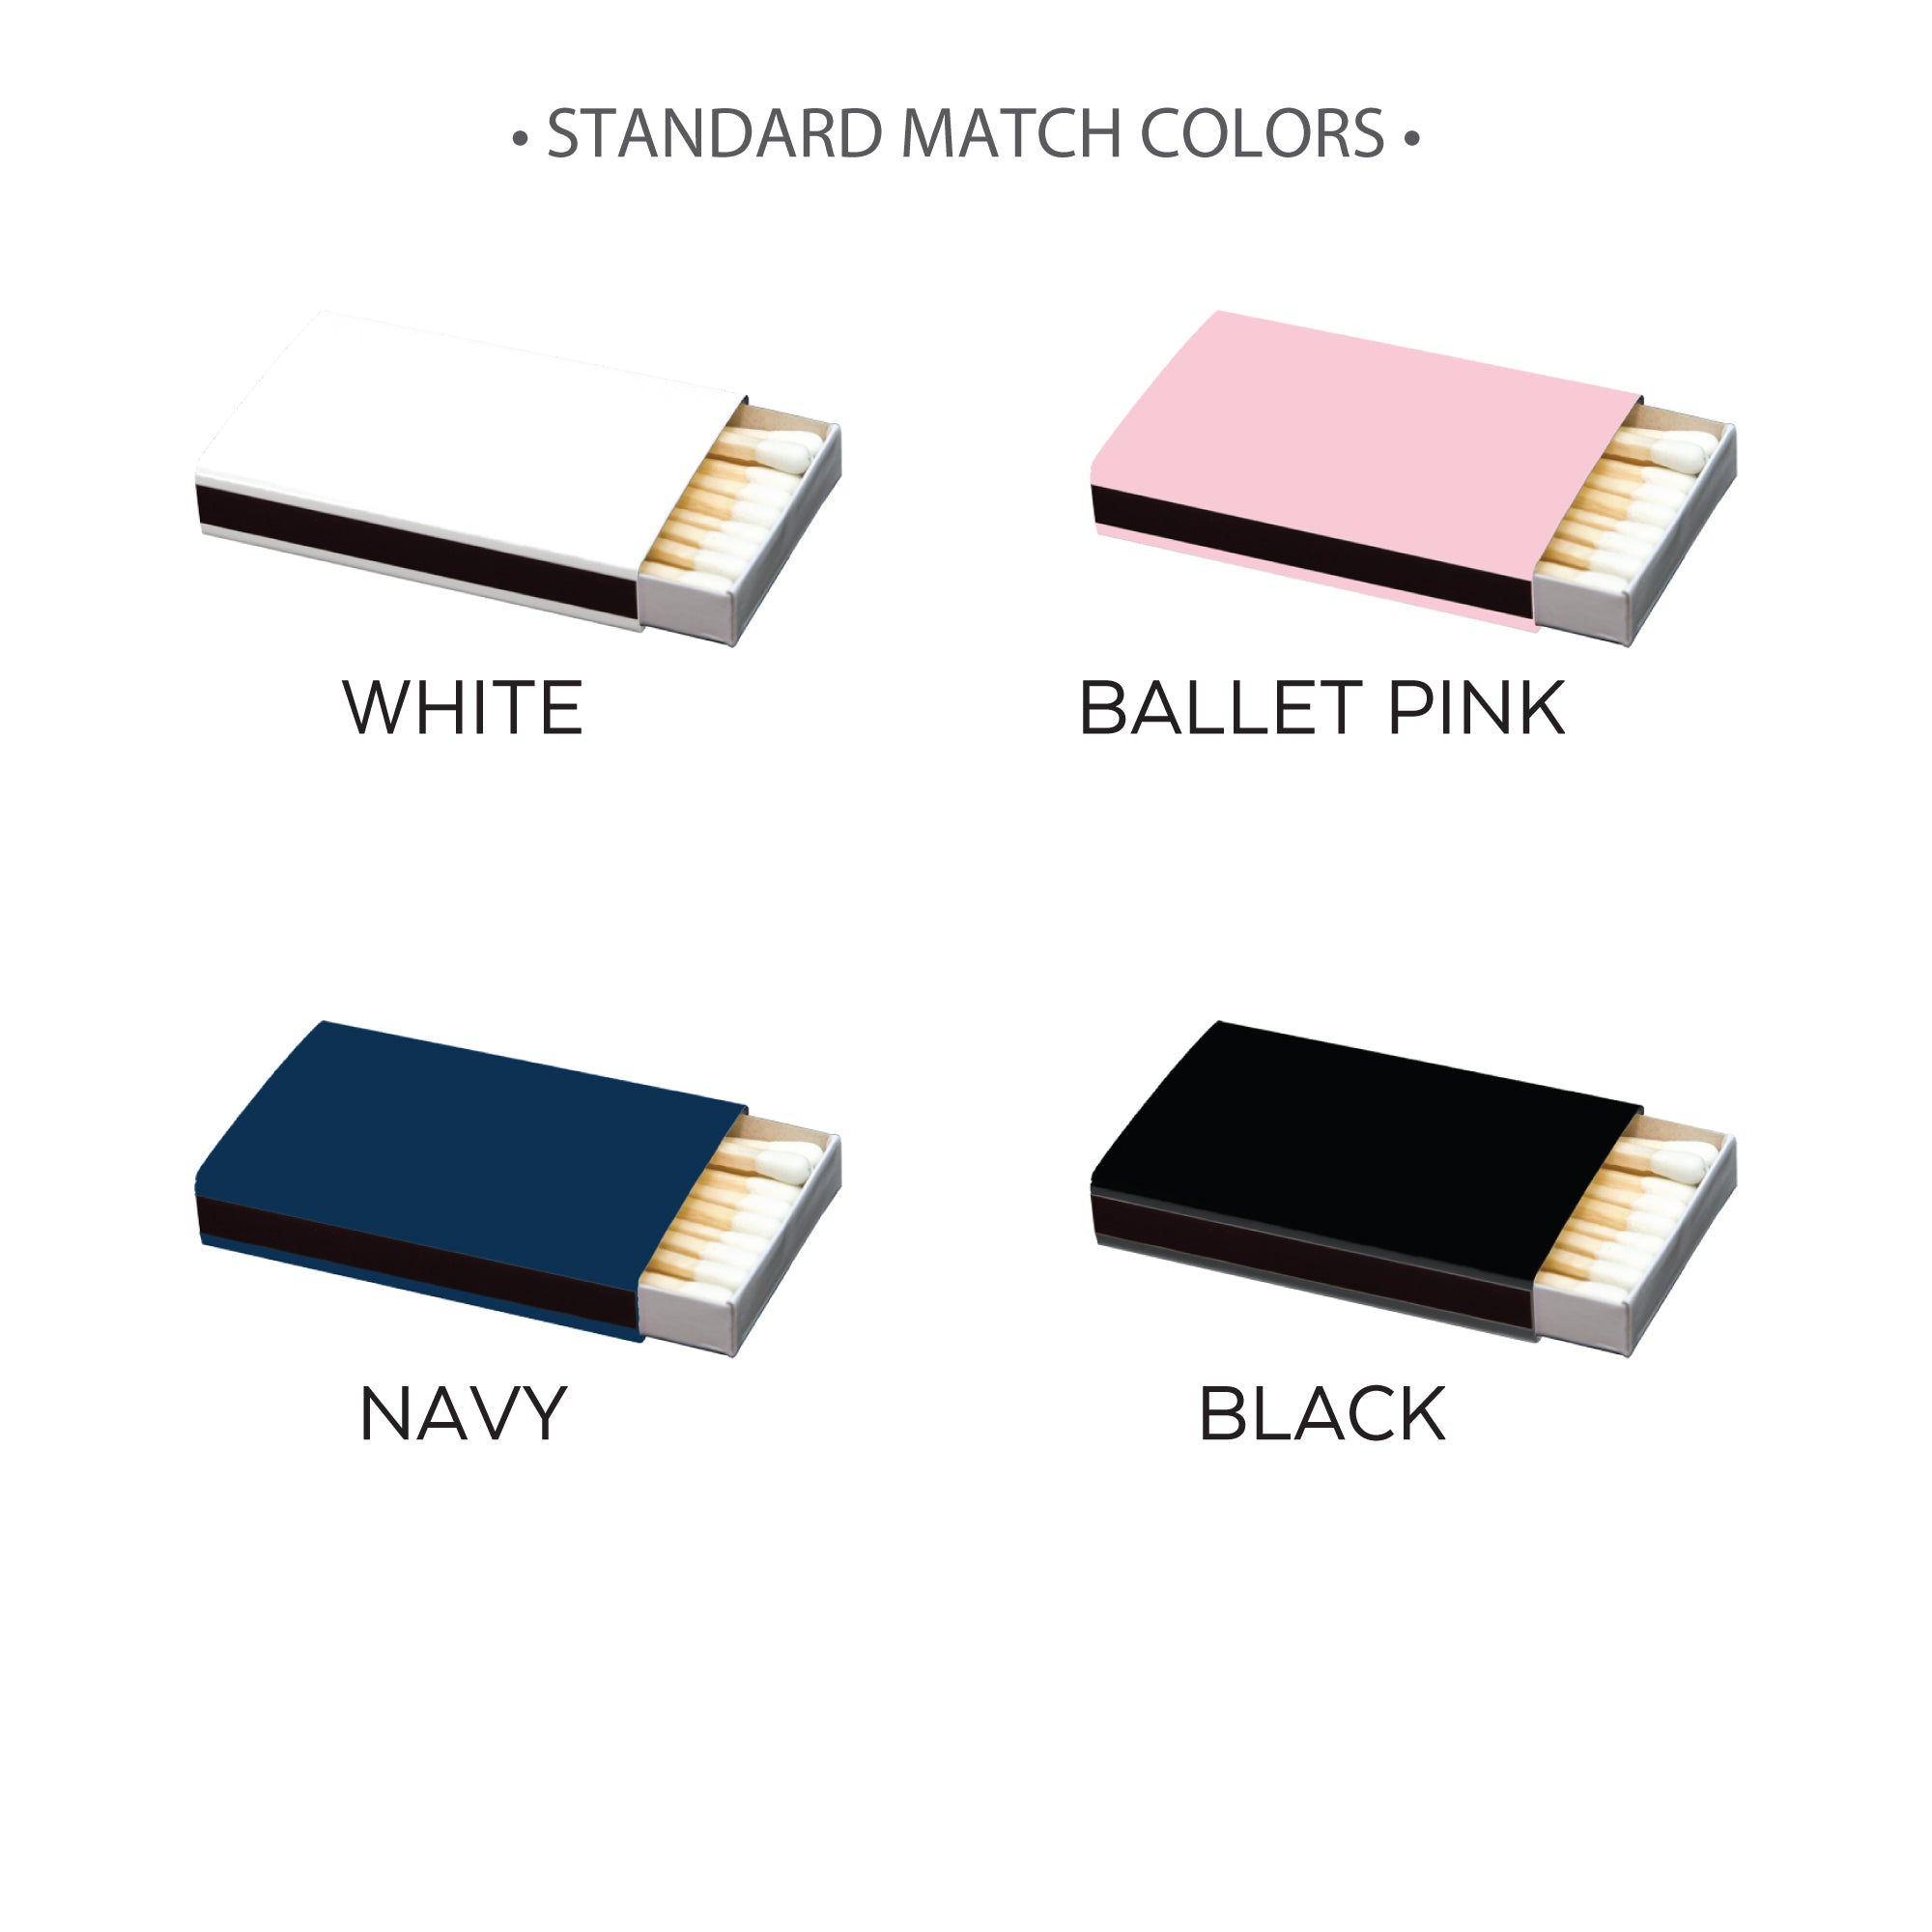 STANDARD MATCH COLORS